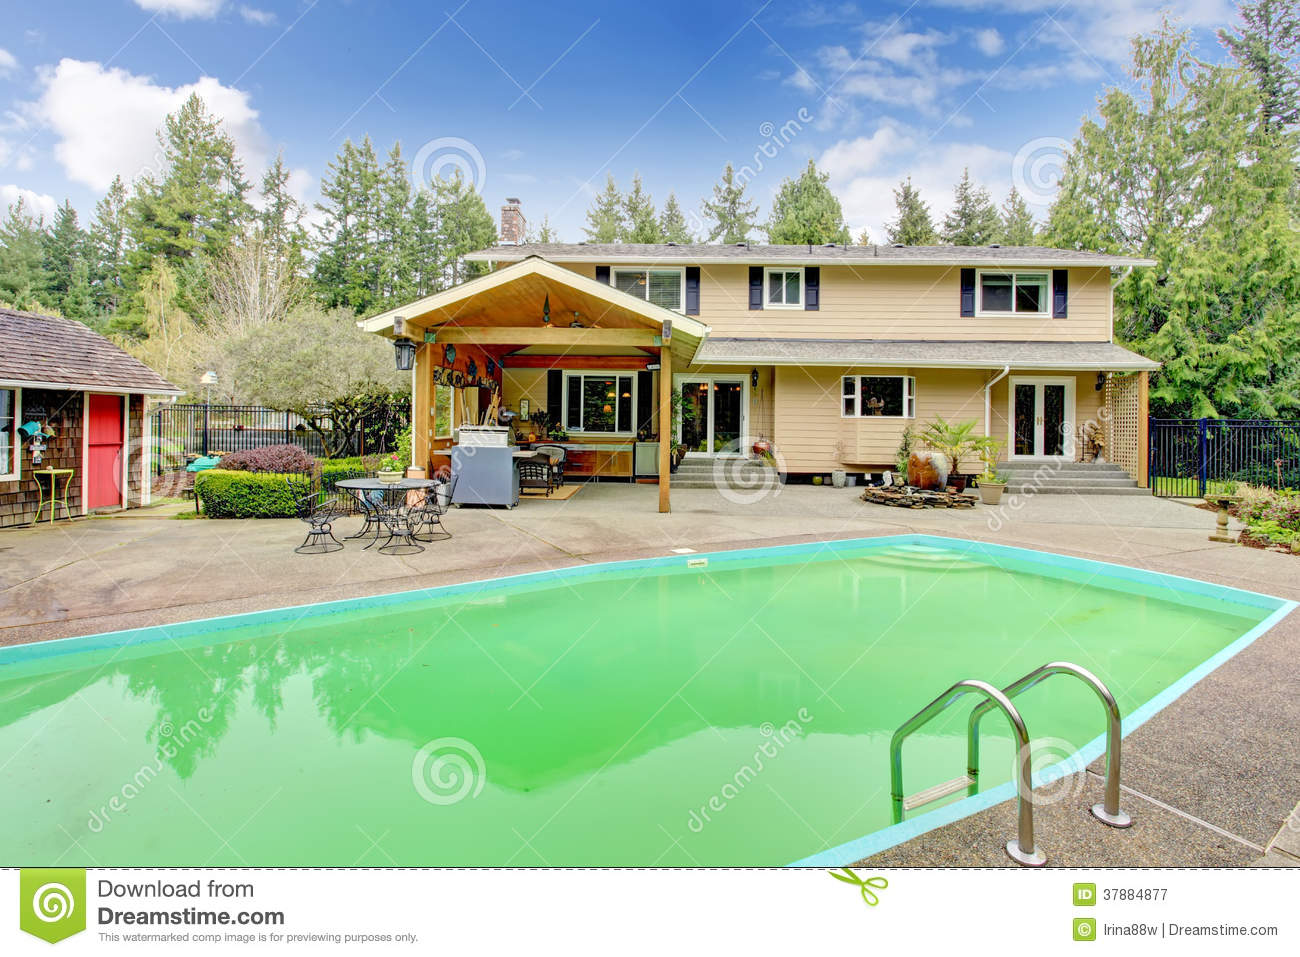 beautiful backyard with swimming pool and patio area royalty free